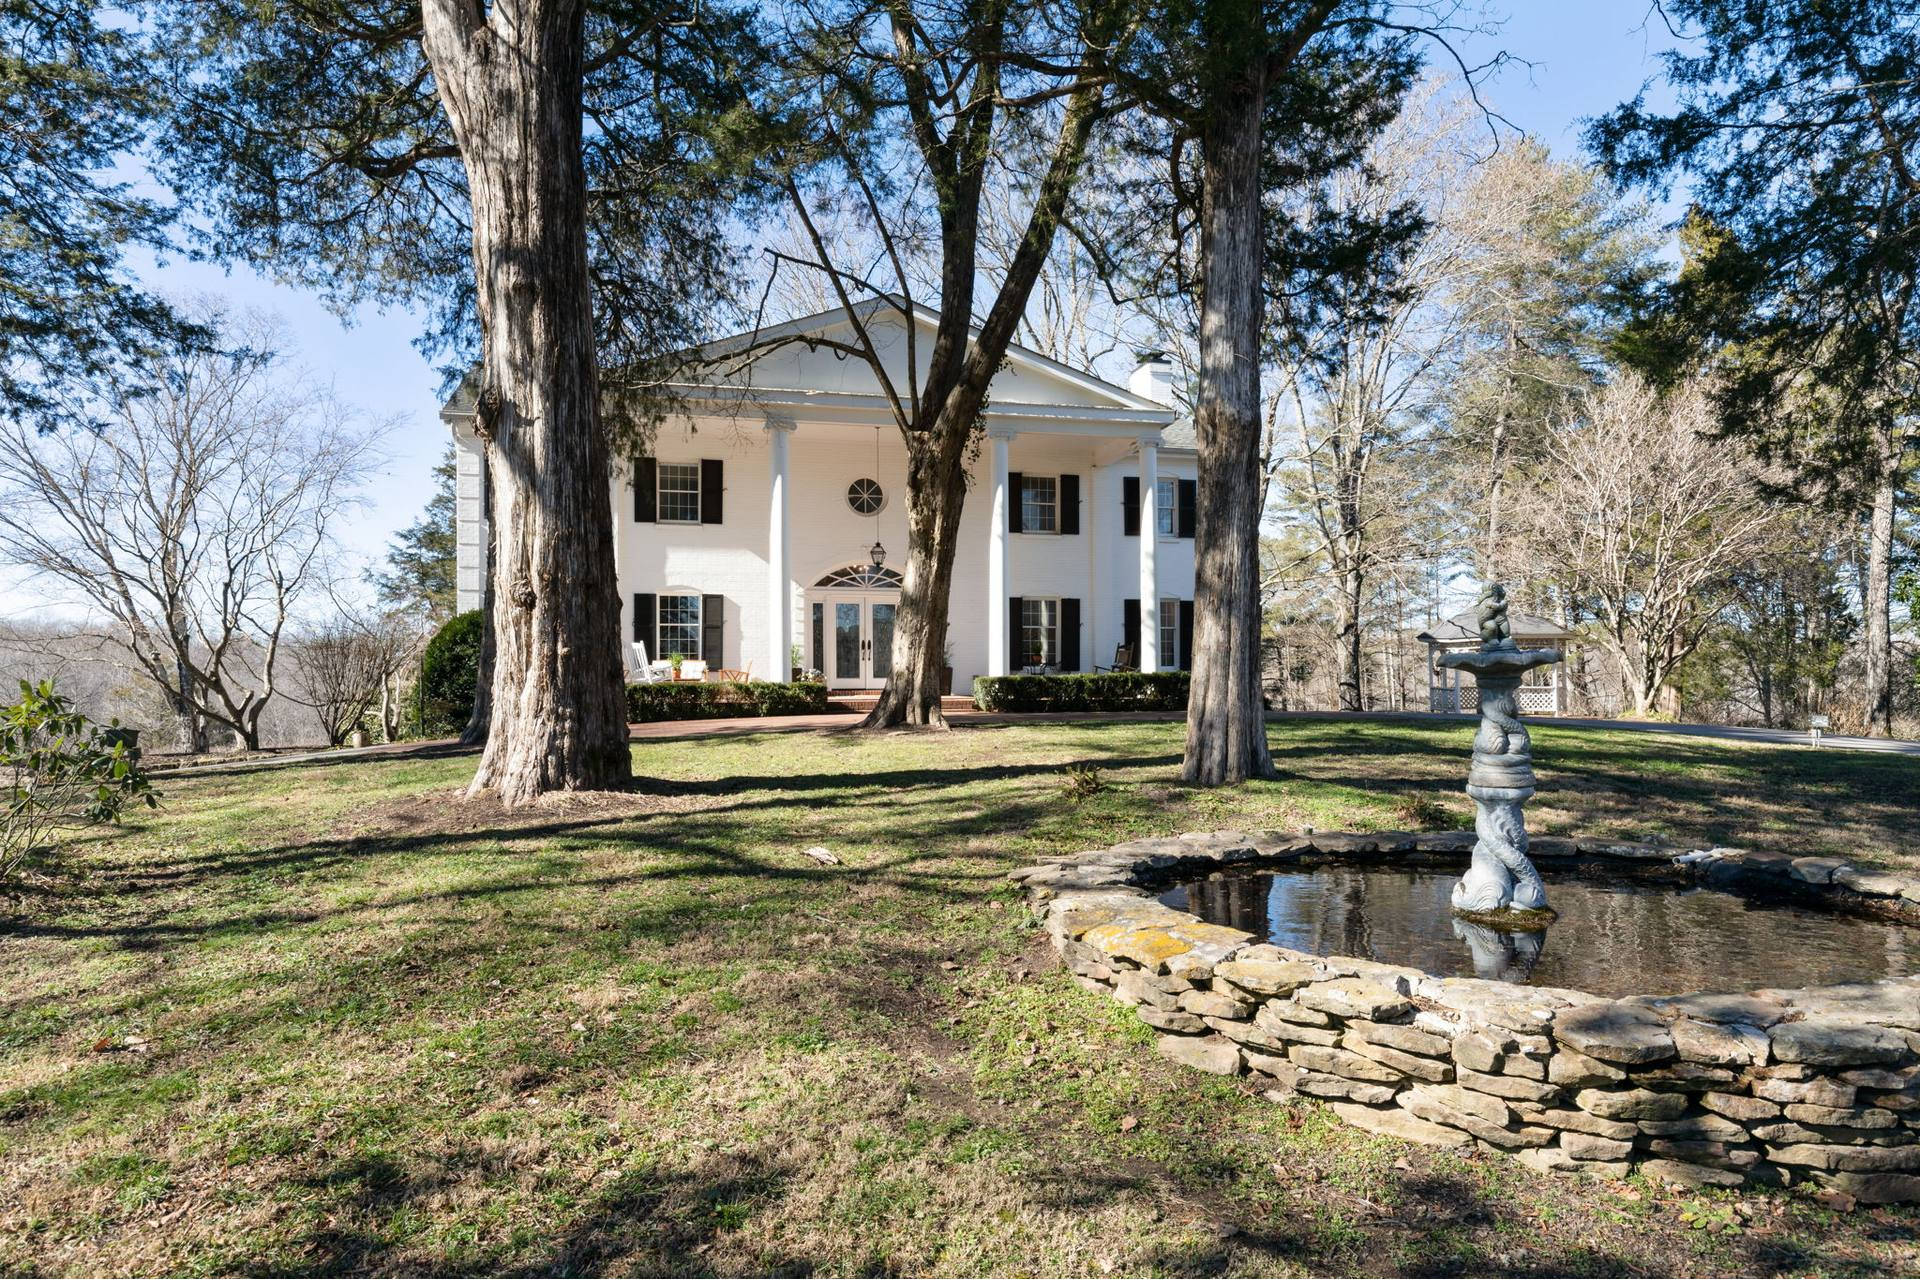 4108 Old Tullahoma Hwy, Manchester, TN 37355, US